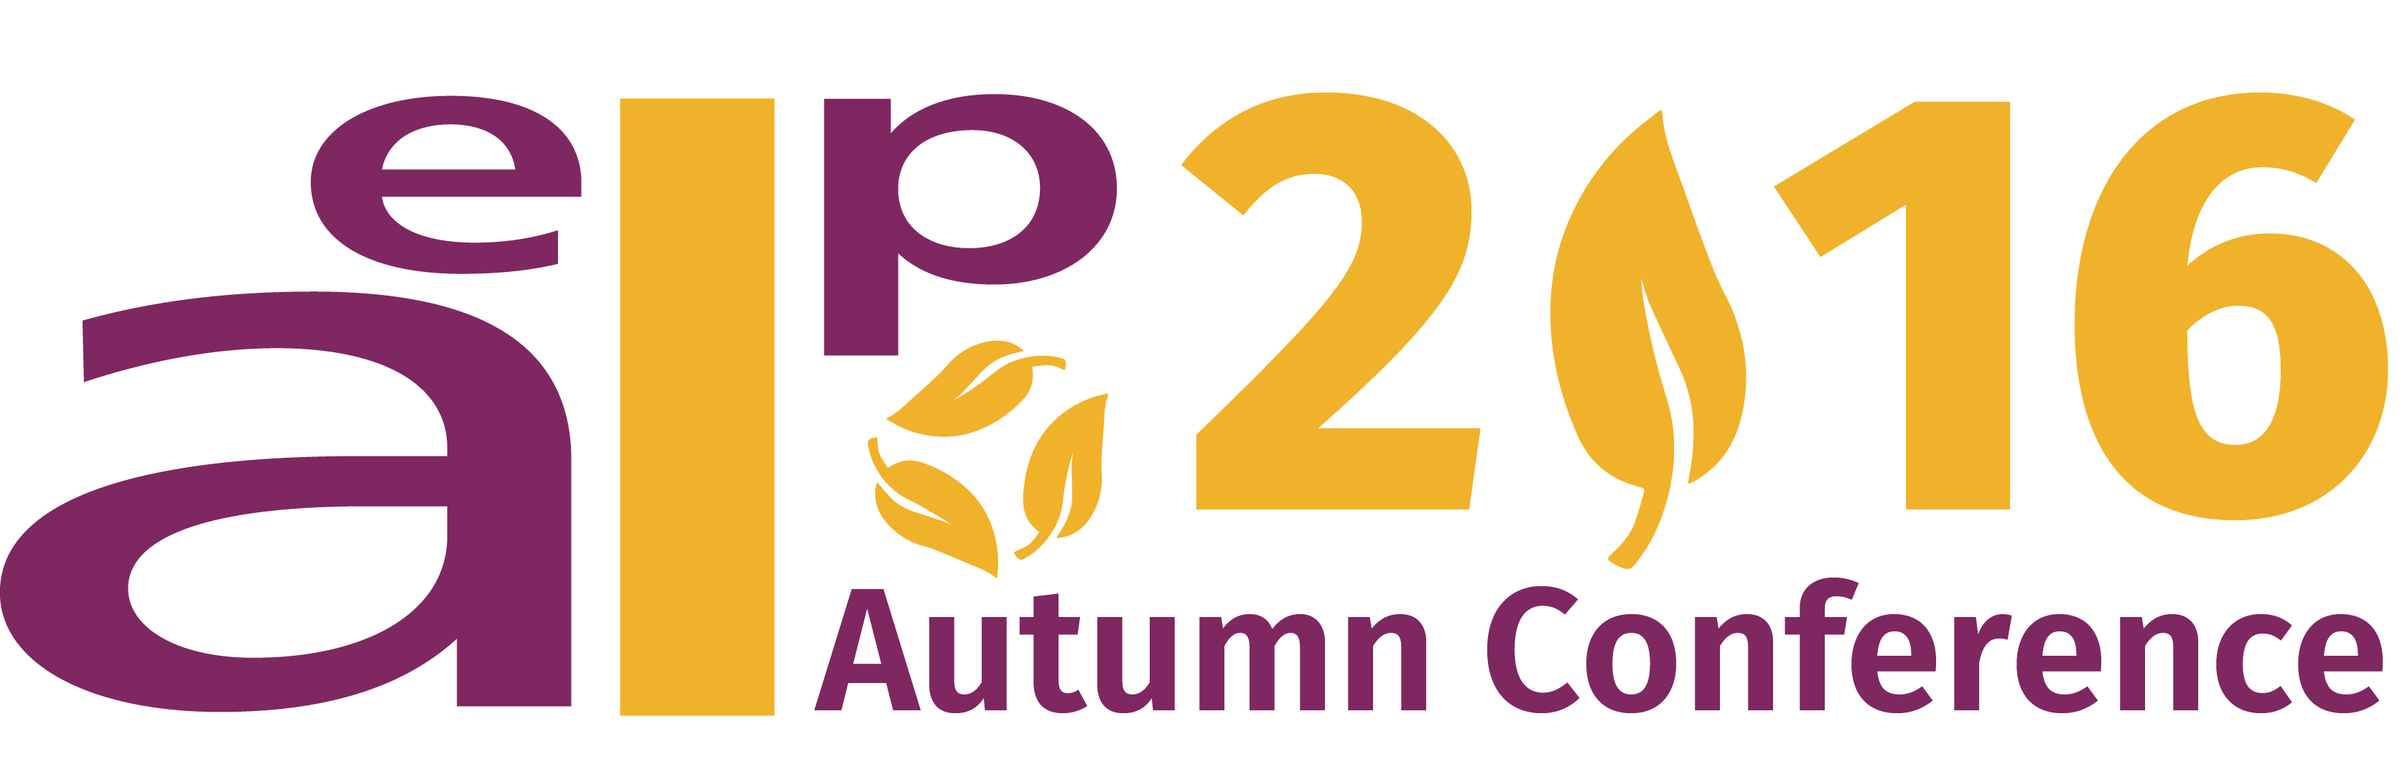 AELP Autumn Conference 2016